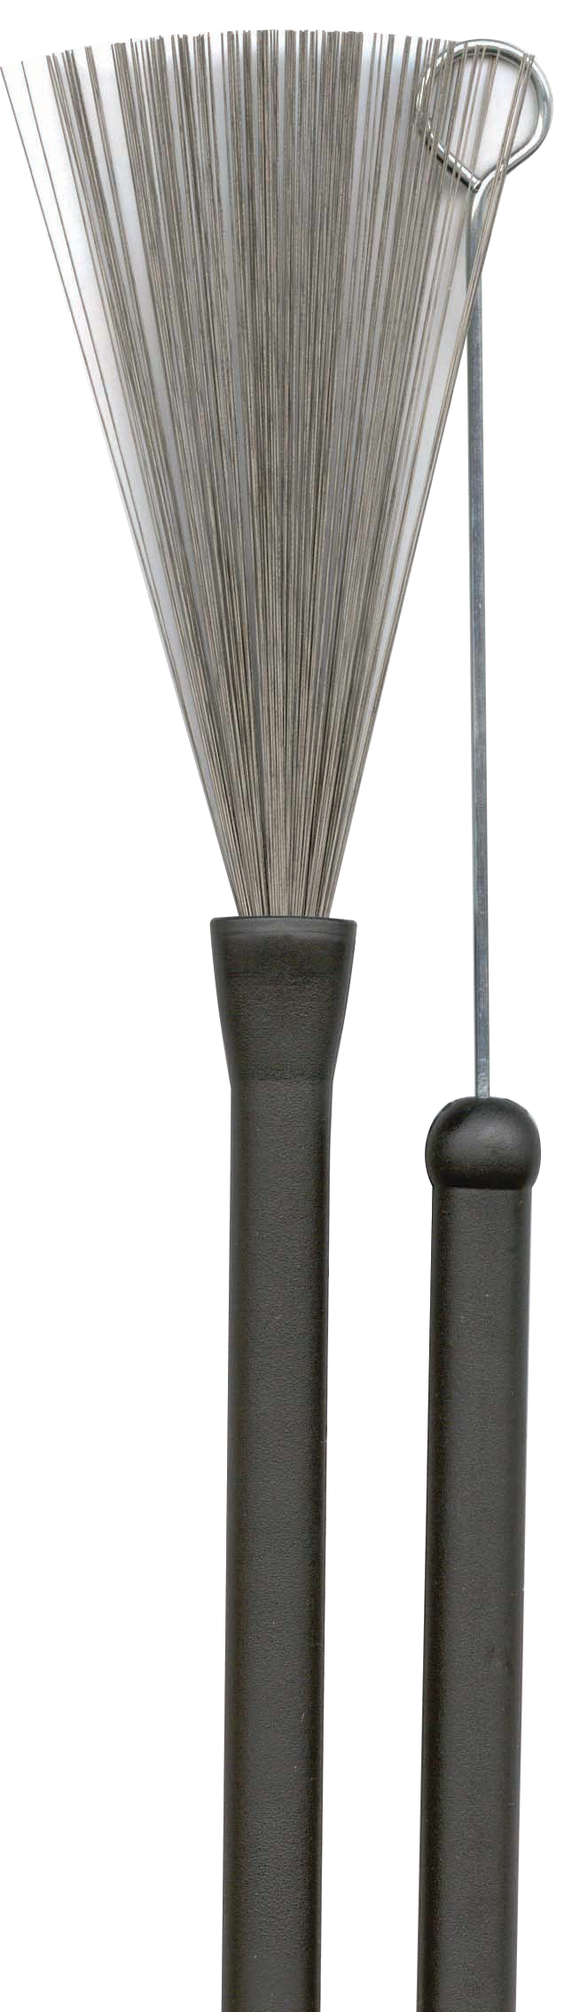 CPK Wire Brushes, Rubber Handle